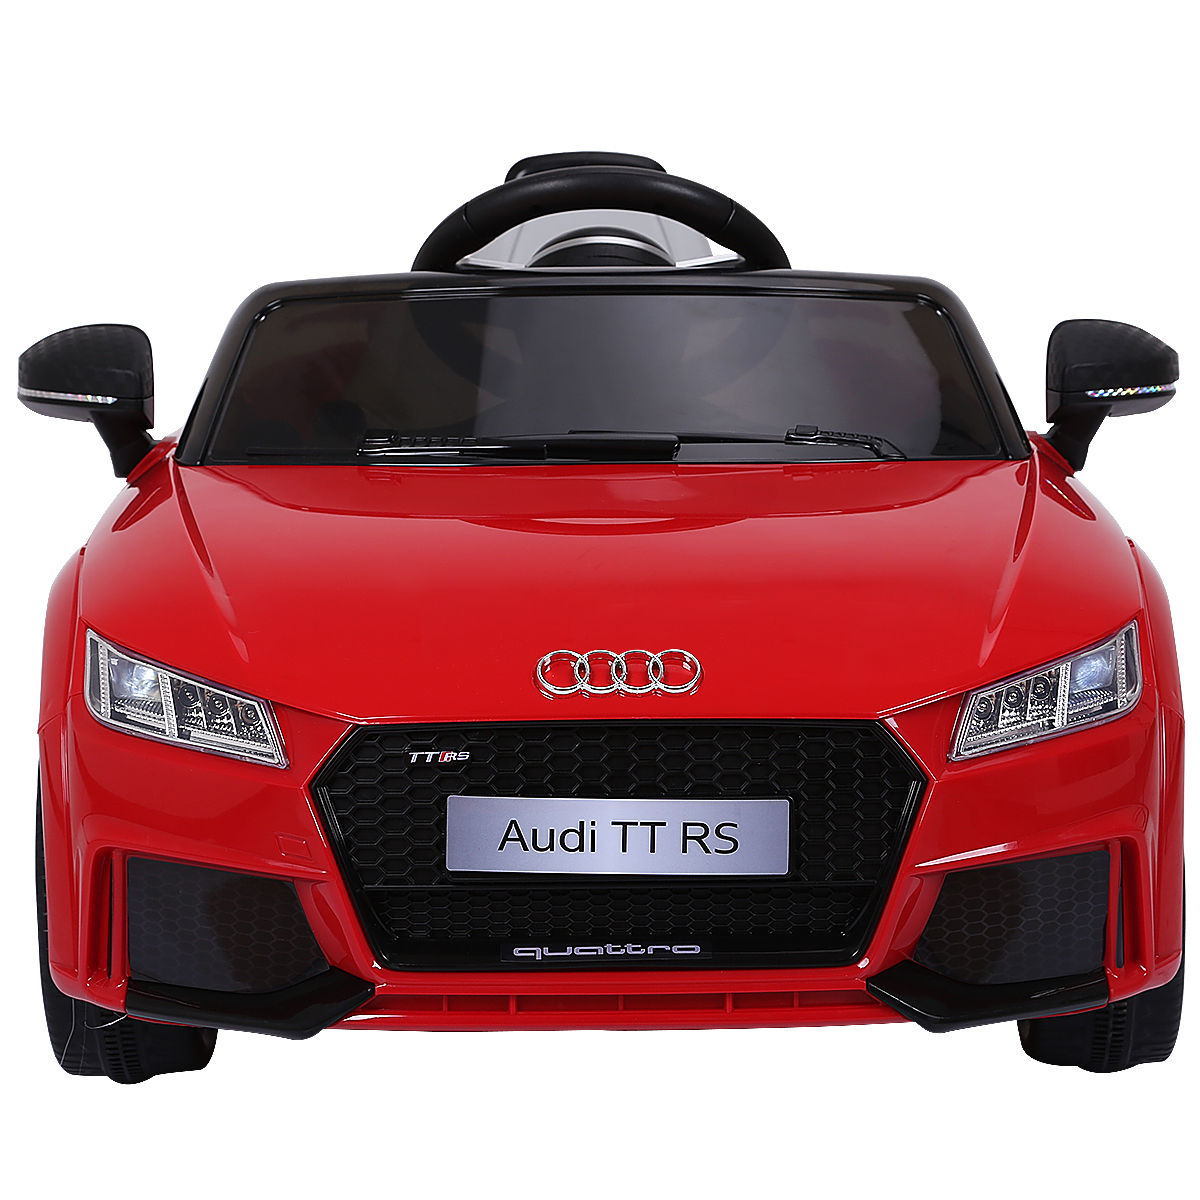 Gymax Red 12V Audi TT RS Electric Kids Ride On Car Licensed Remote Control MP3 by Gymax